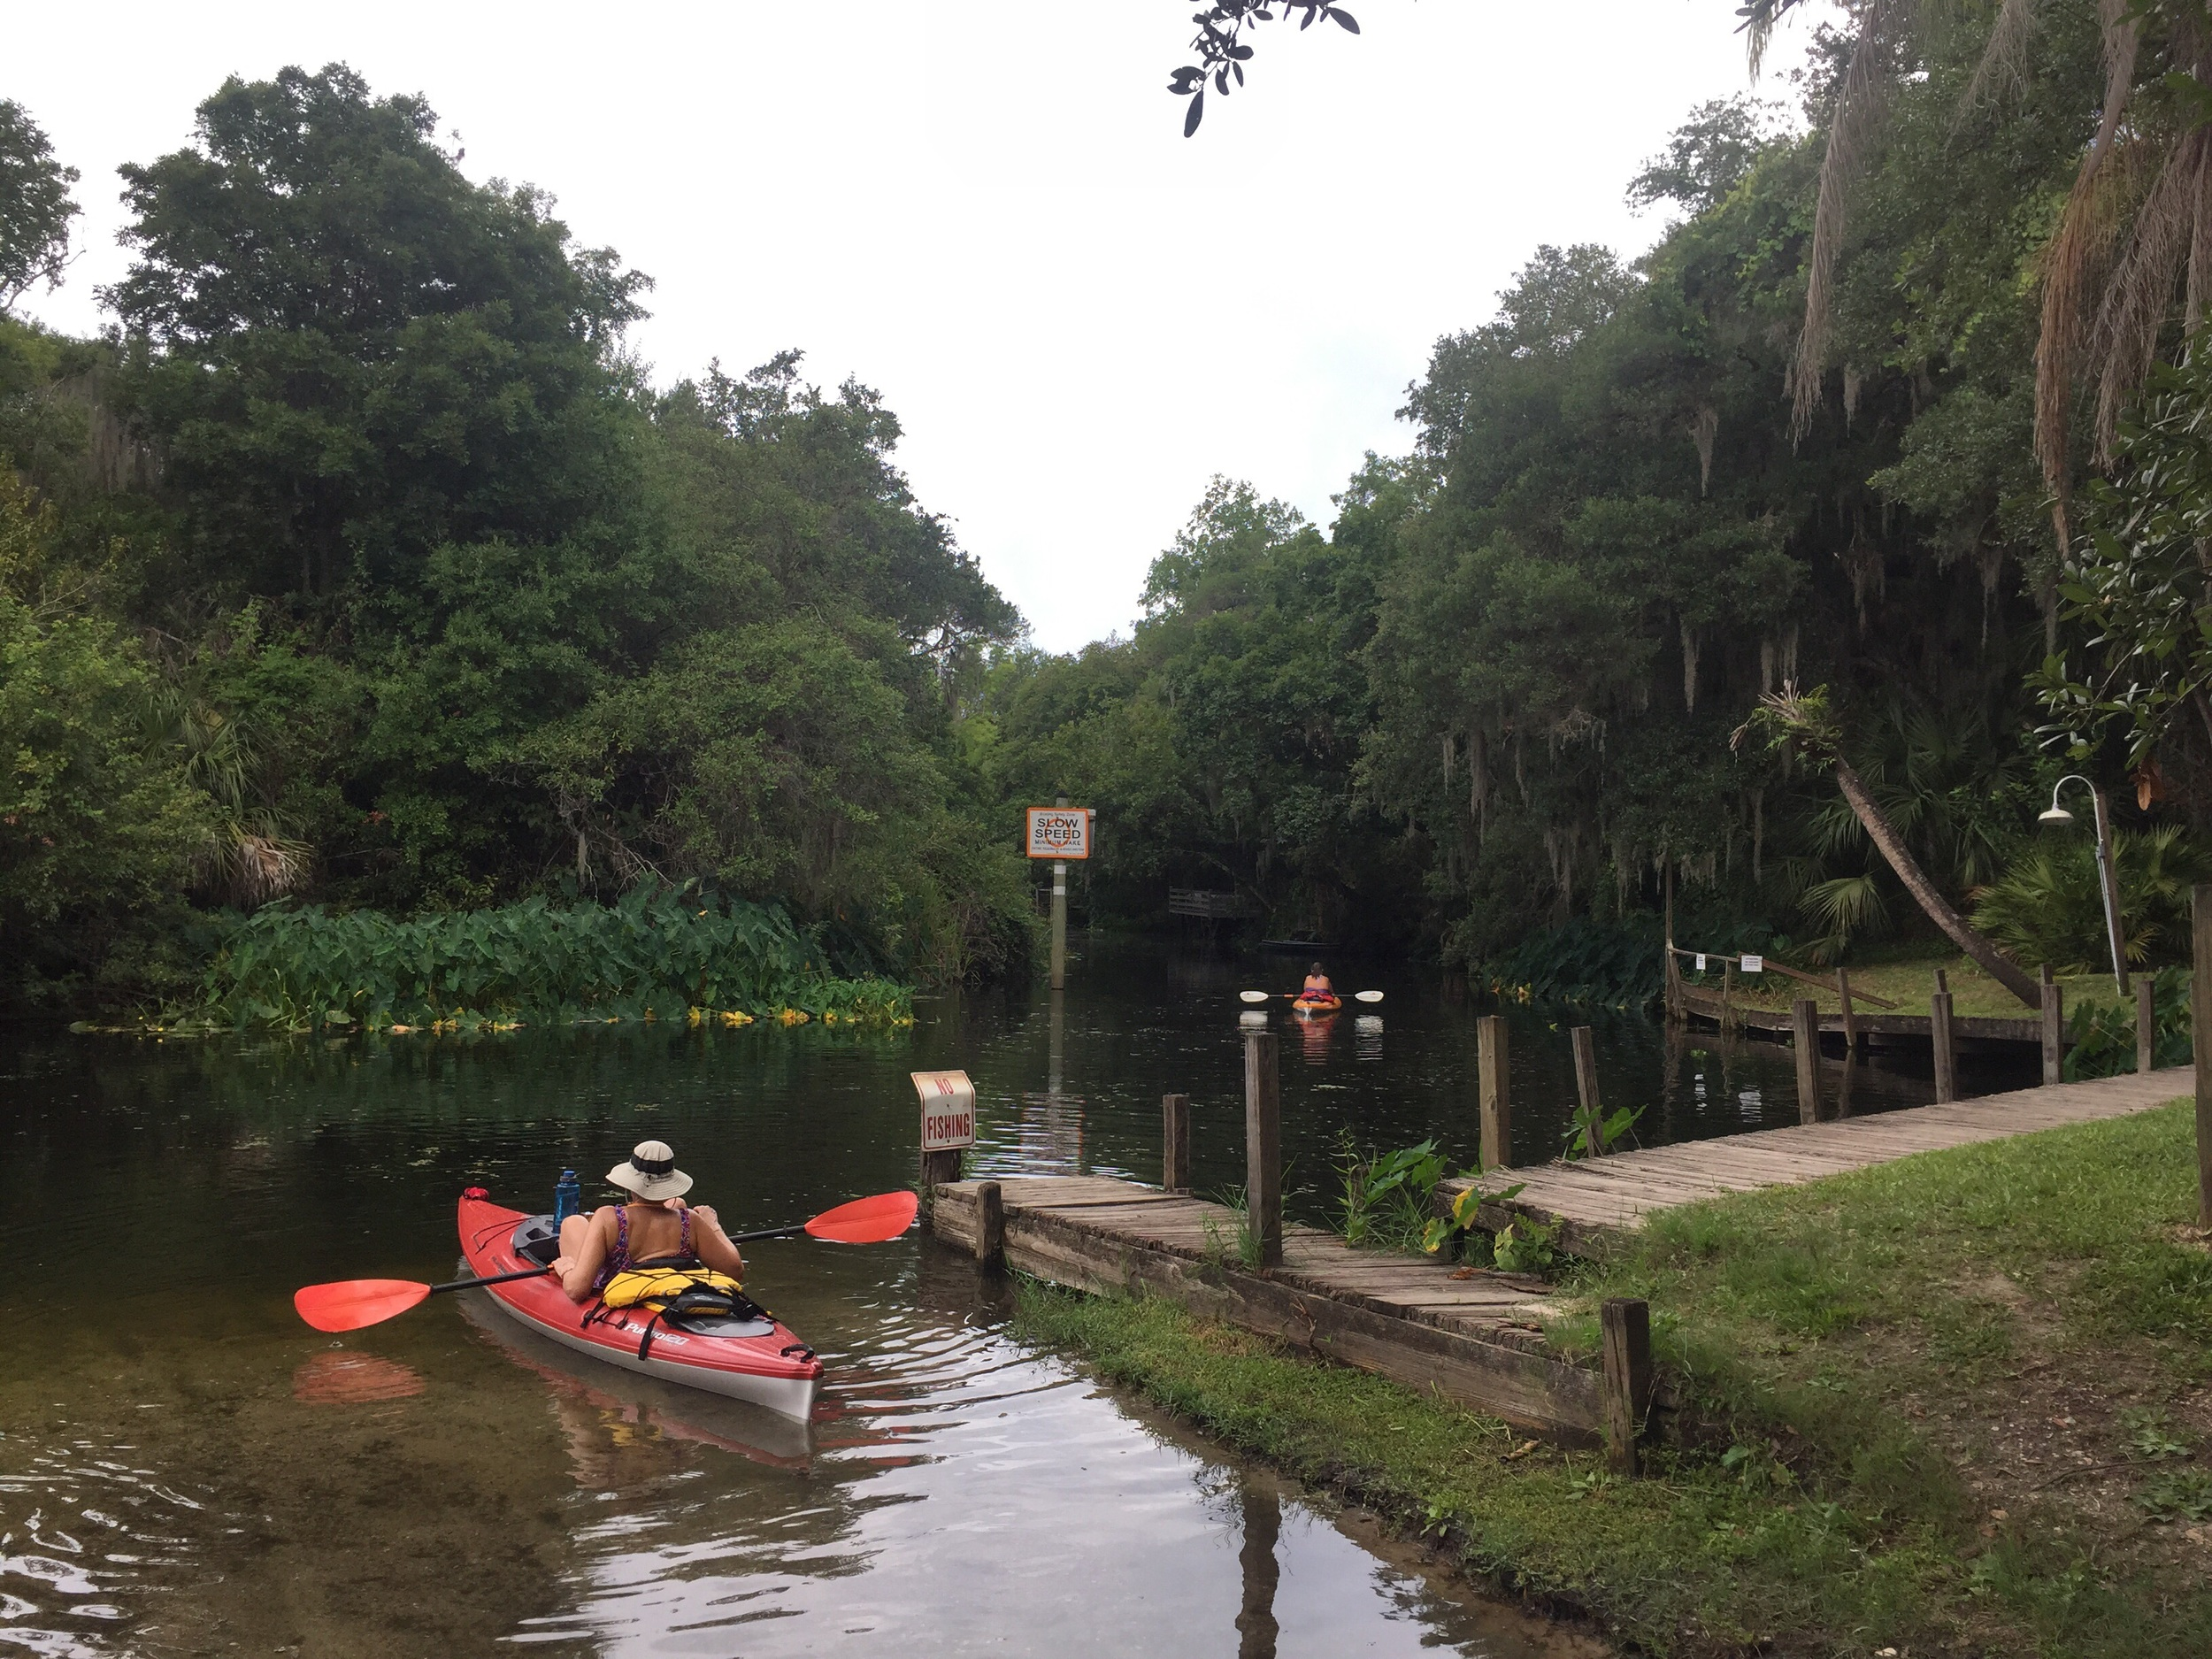 Canoe launch at the Linger Lodge, Braden River.